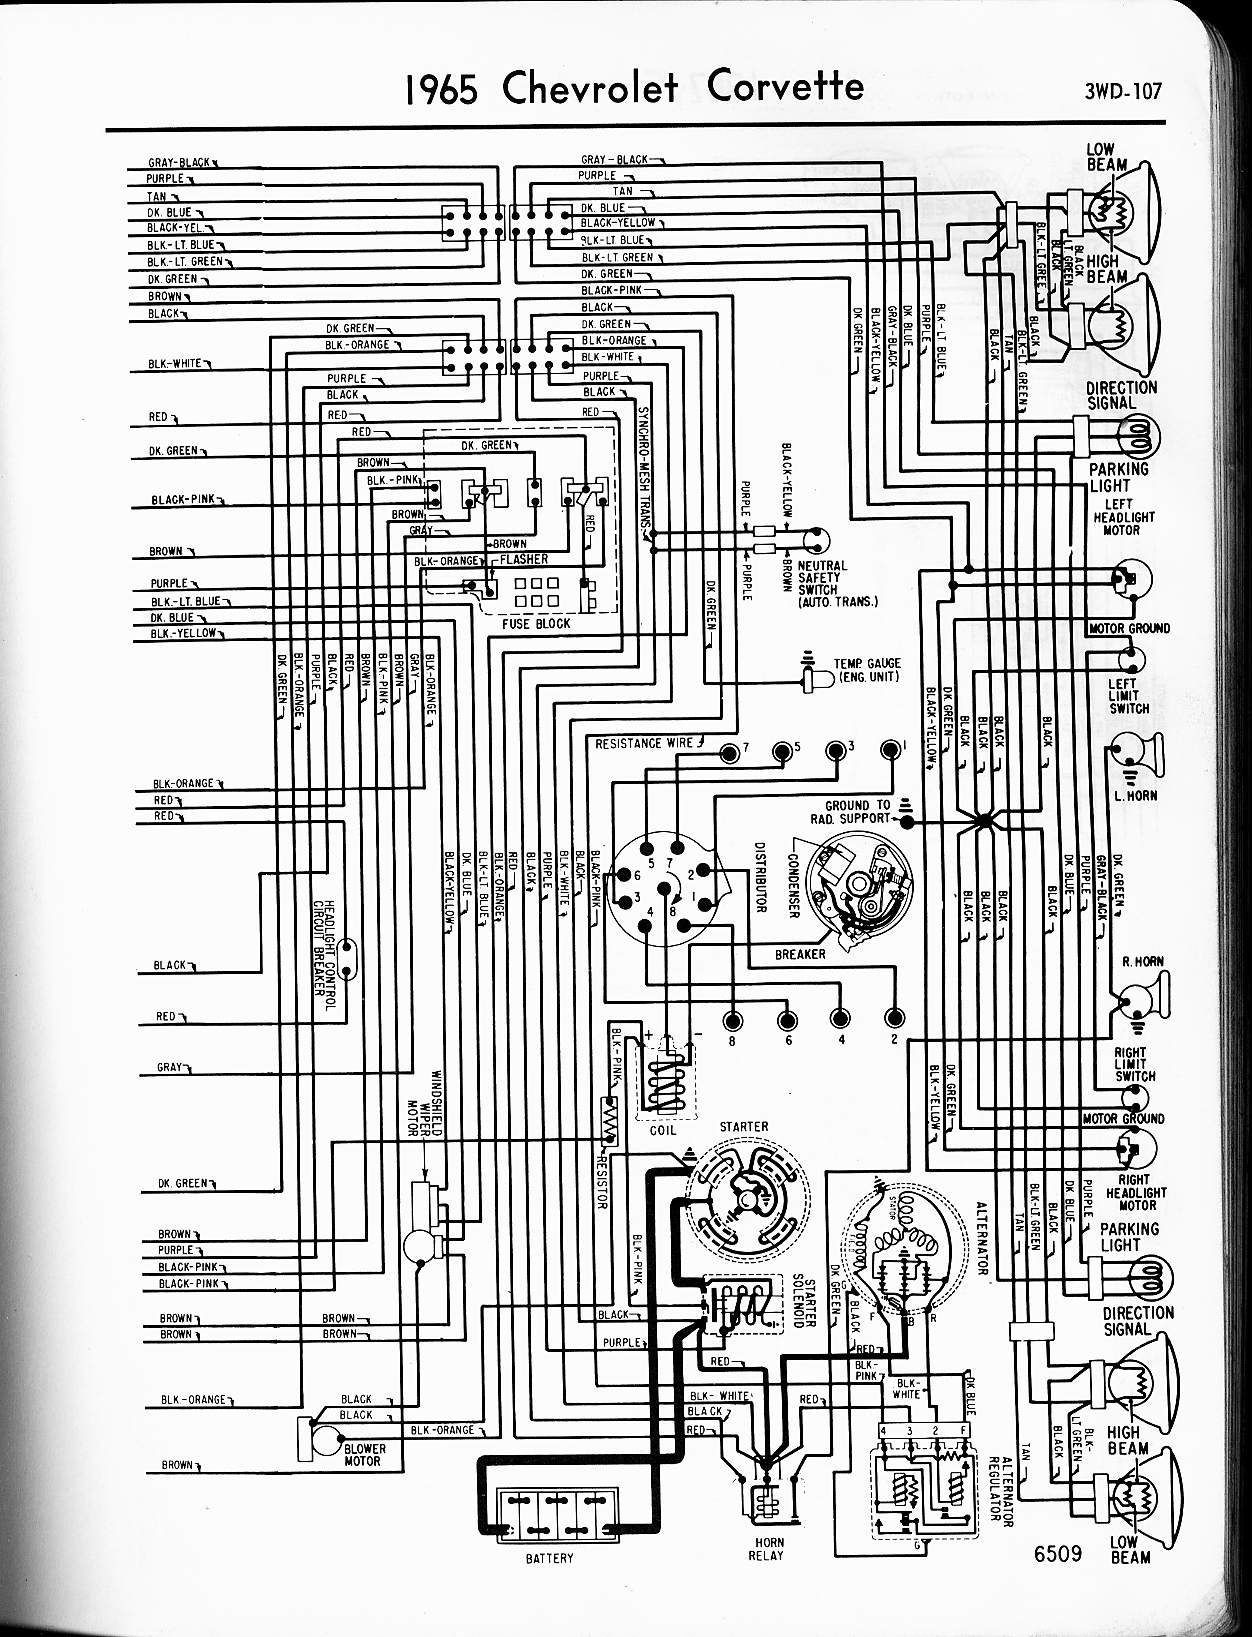 1965 corvette wiring harness easy wiring diagrams u2022 rh art isere com 1966 corvette engine wiring diagram 1966 corvette engine wiring diagram